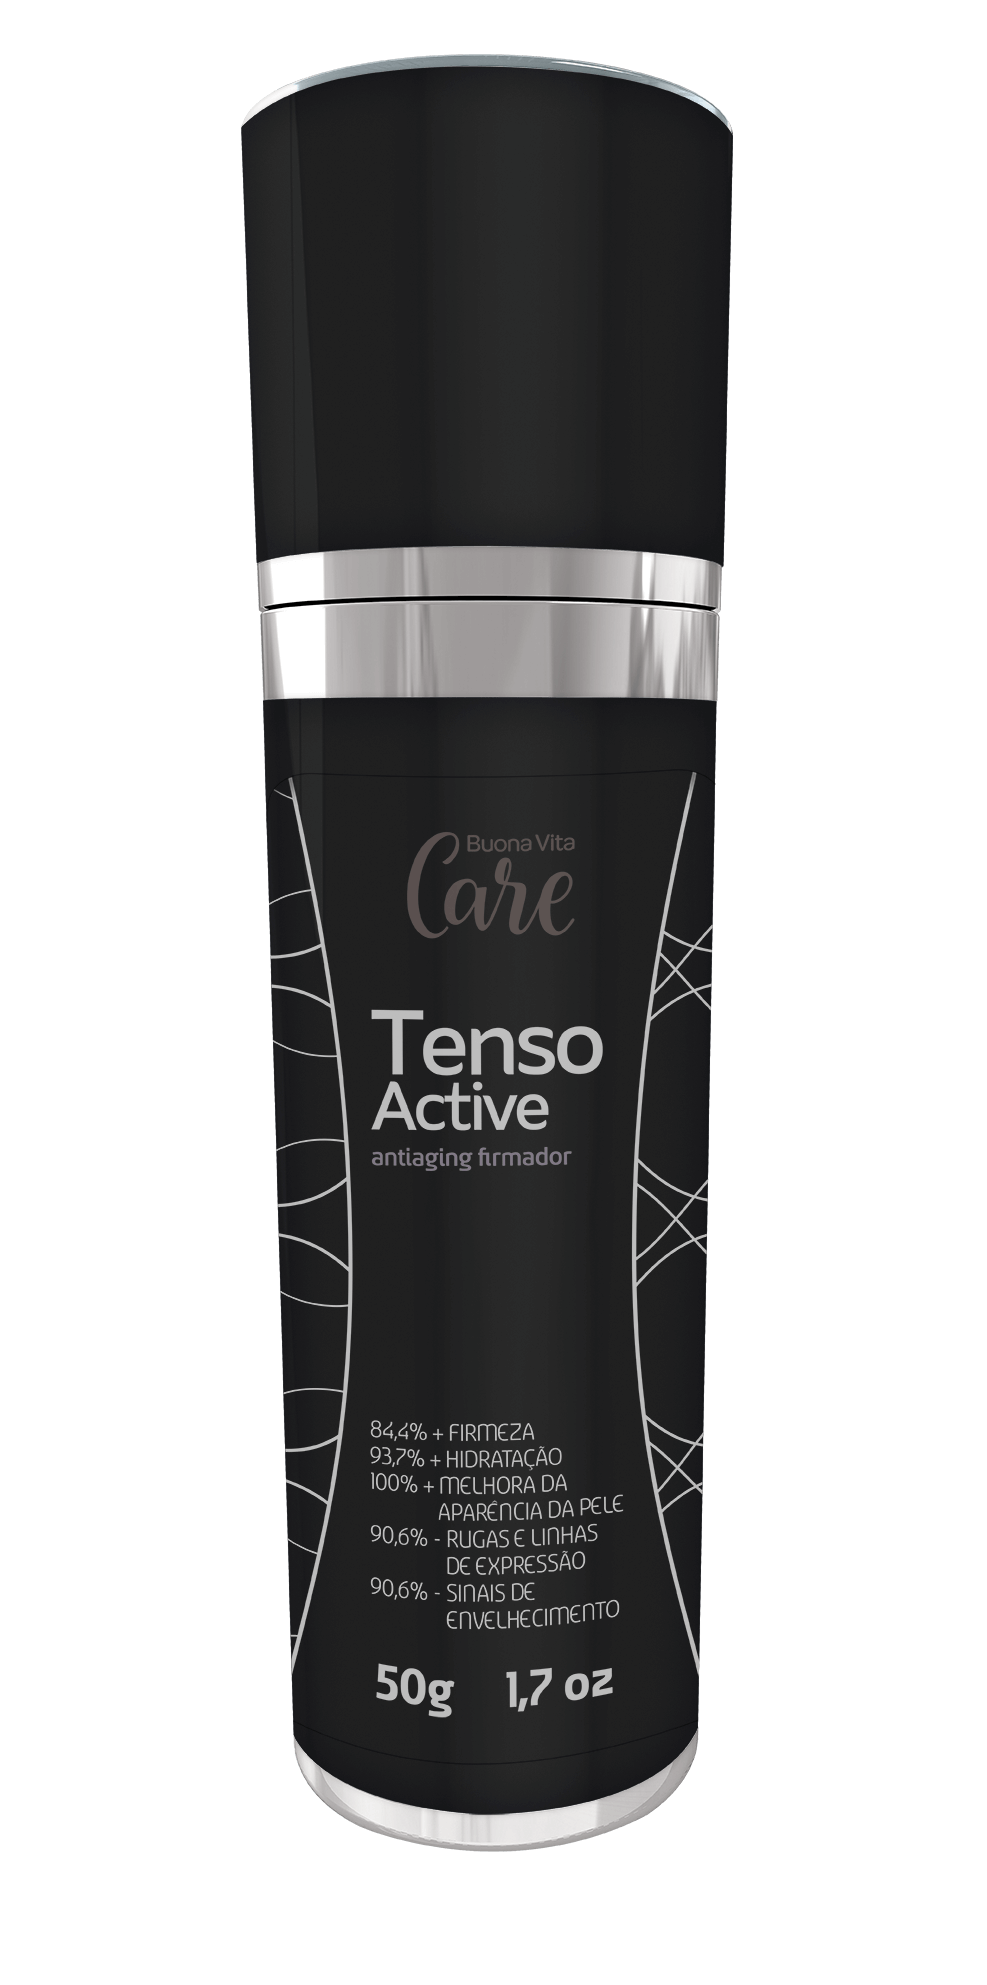 Tenso Active - 50g